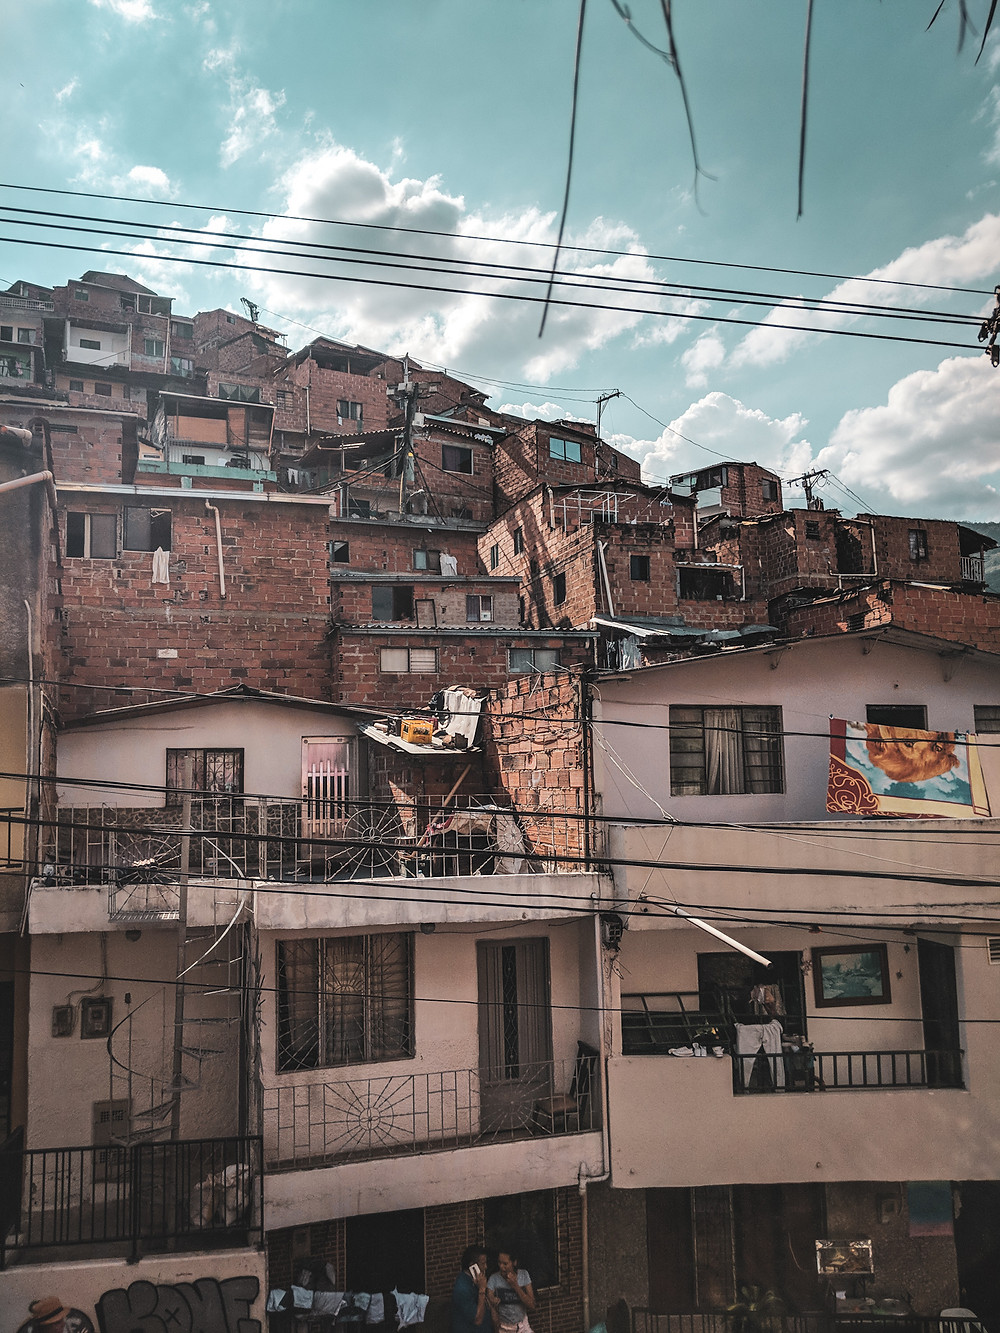 Buildings and houses in Comuna 13 in Medellín, Colombia.